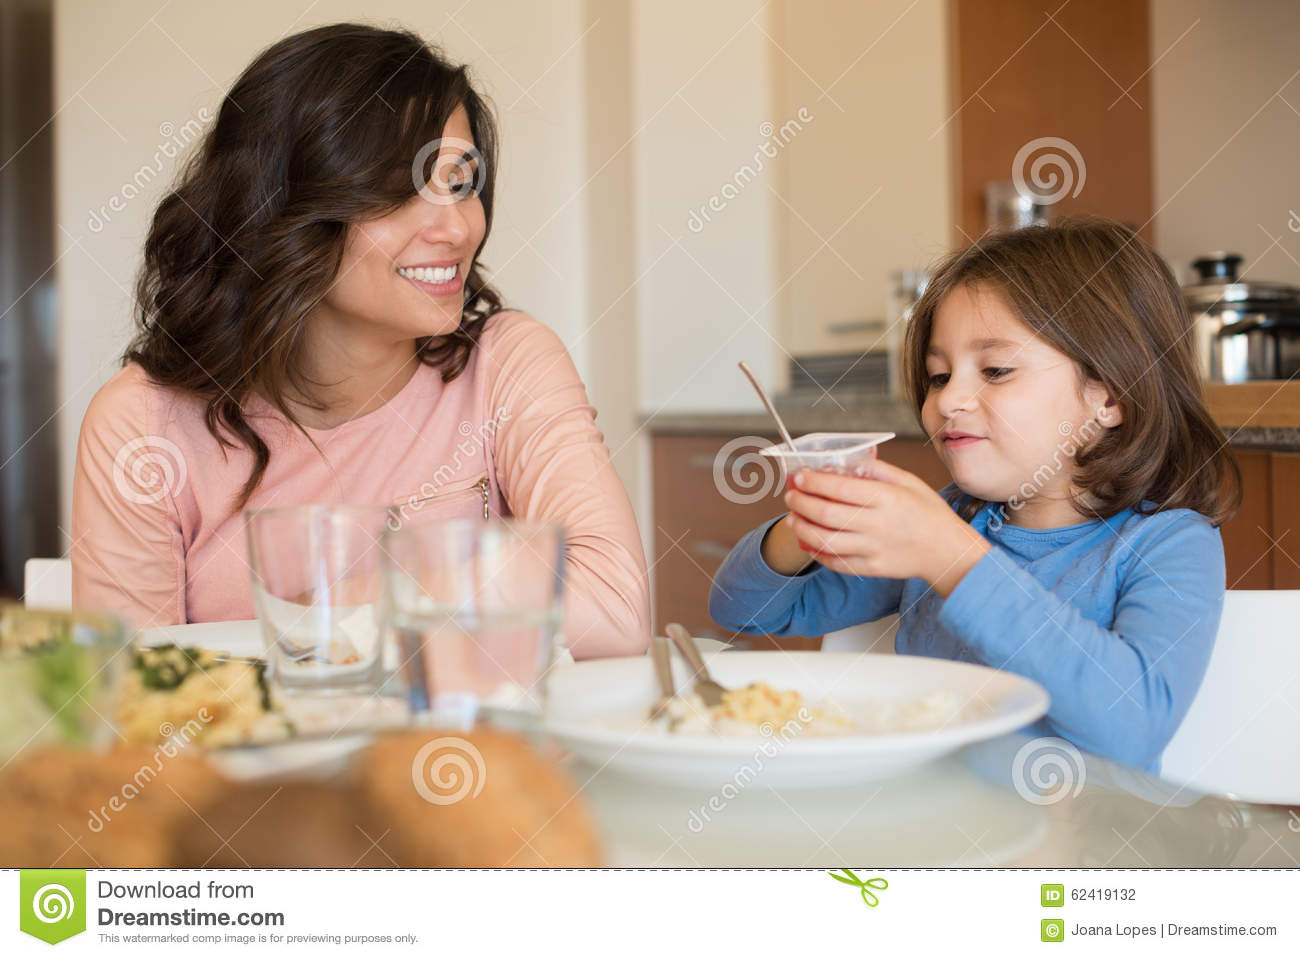 Mom And Daughter Having Lunch Stock Photo - Image of lunch